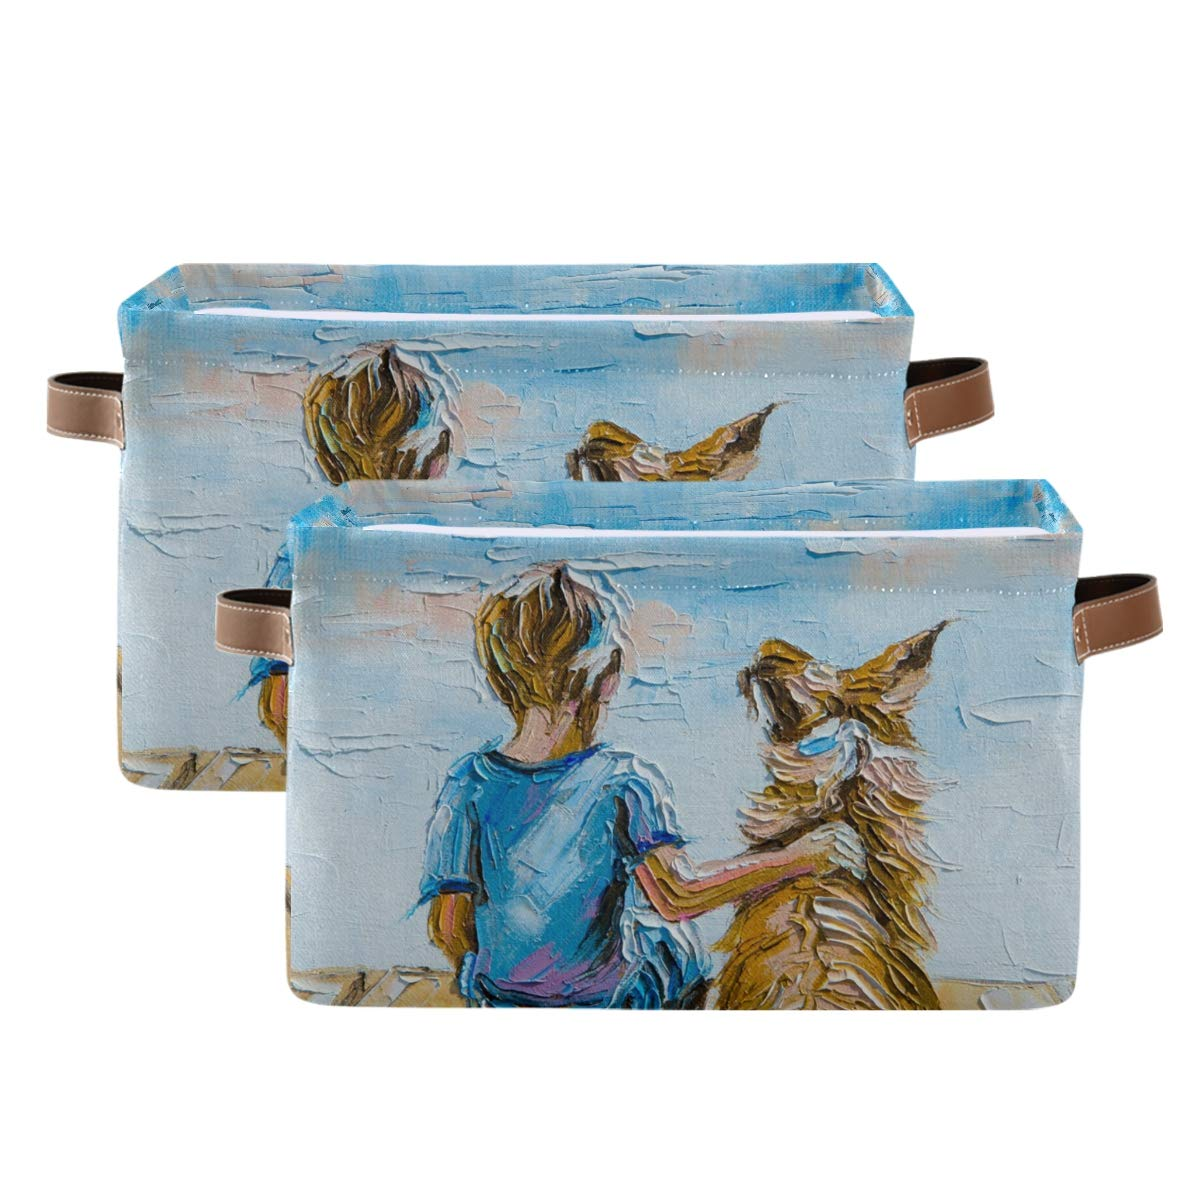 Kelekey Sea Boy with Dog Store Oil Painting Colla Large Basket Max 68% OFF Storage